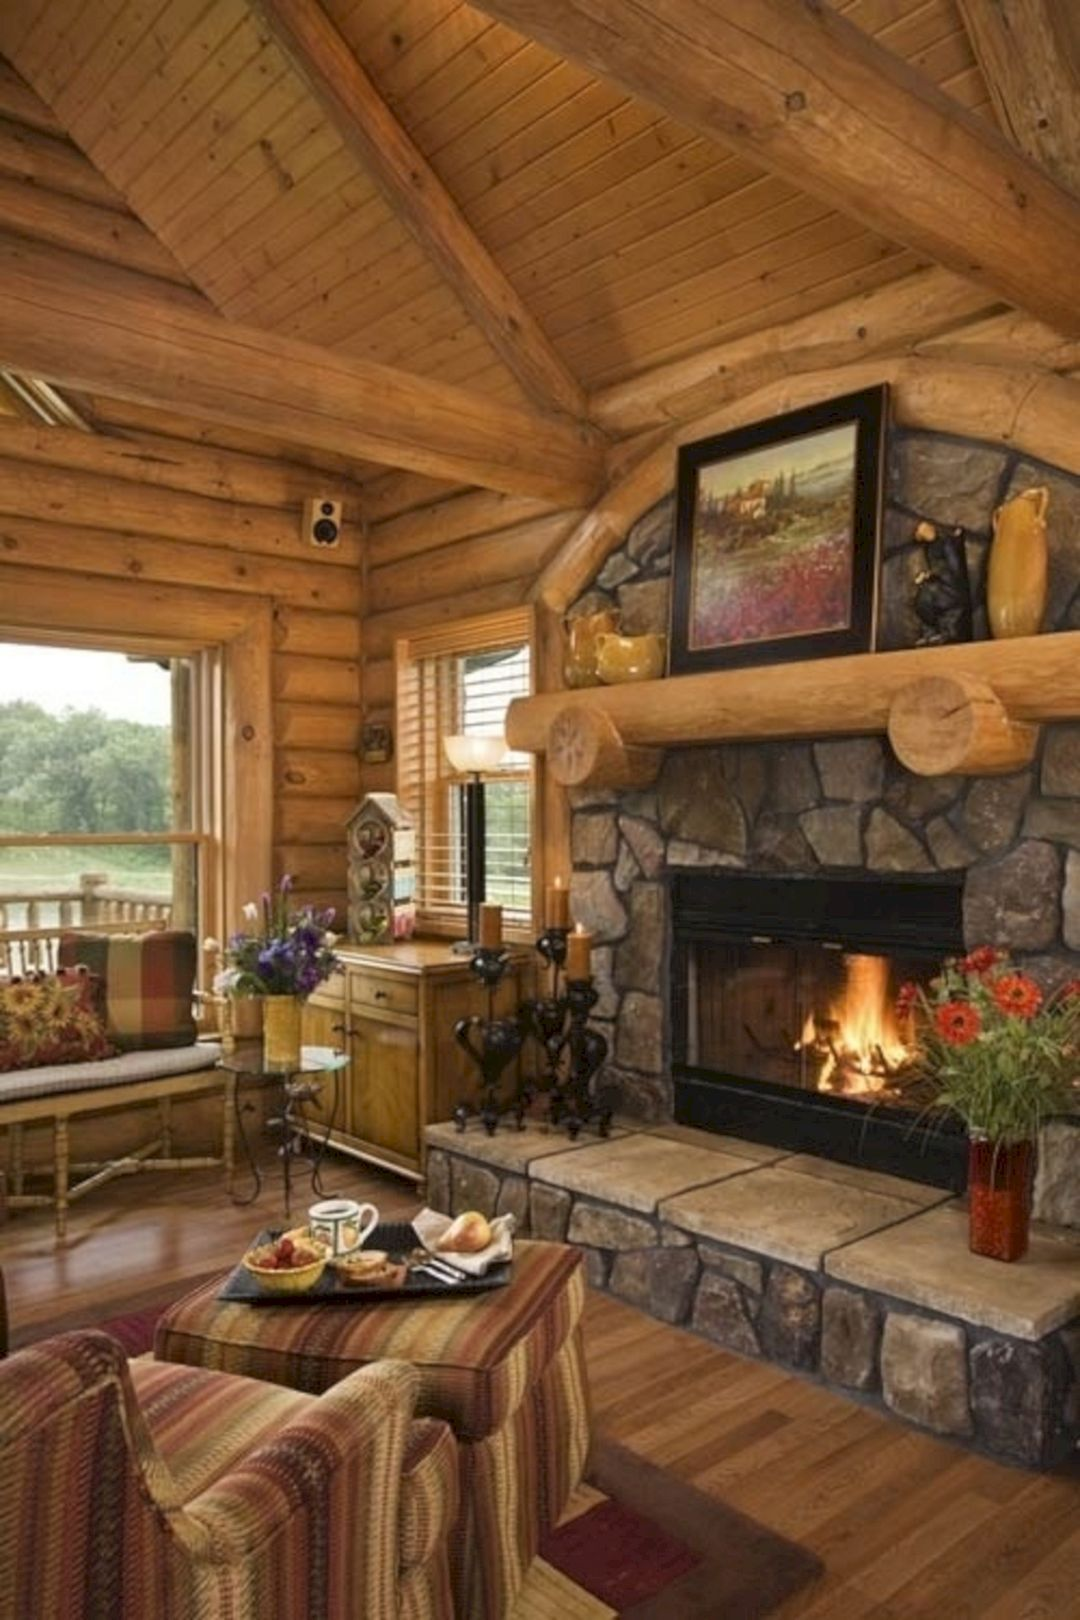 Log home interior ideas  incredible cabin ideas for cool living room design  cabin